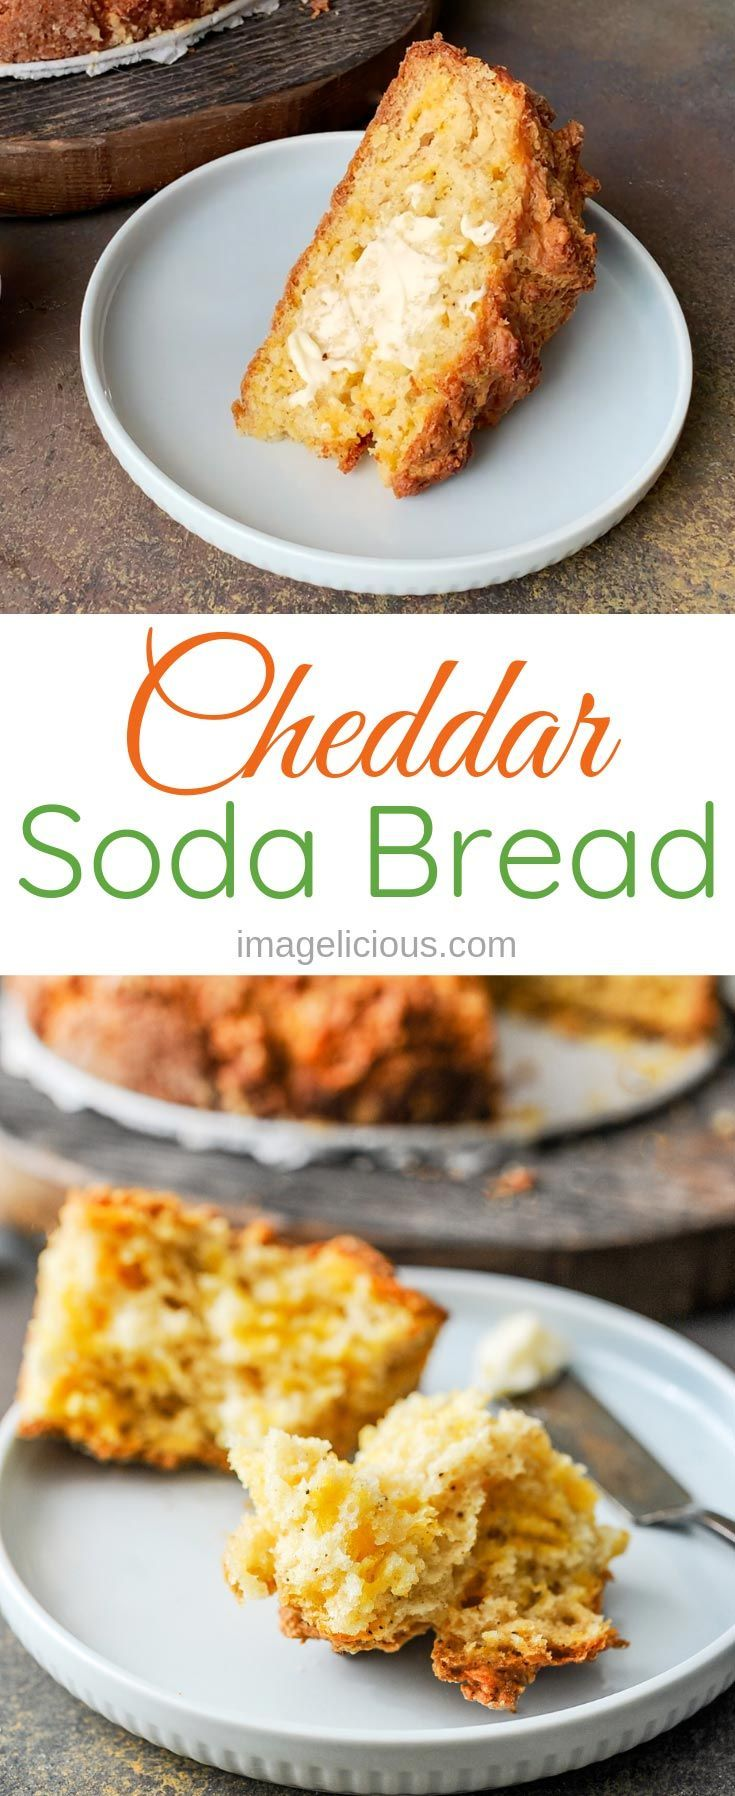 Cheddar Soda Bread Without Buttermilk Imagelicious Com Recipe Soda Bread Recipes Bread Recipes Homemade